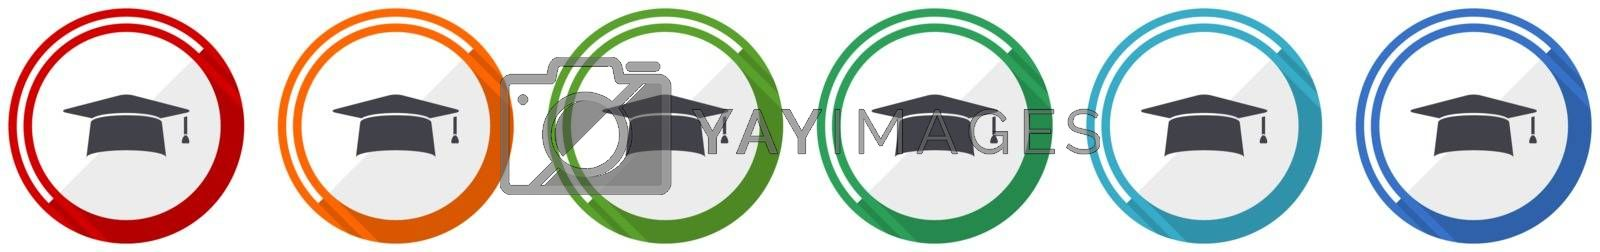 Graduation icon set, cap, education flat design vector illustration in 6 colors options for webdesign and mobile applications